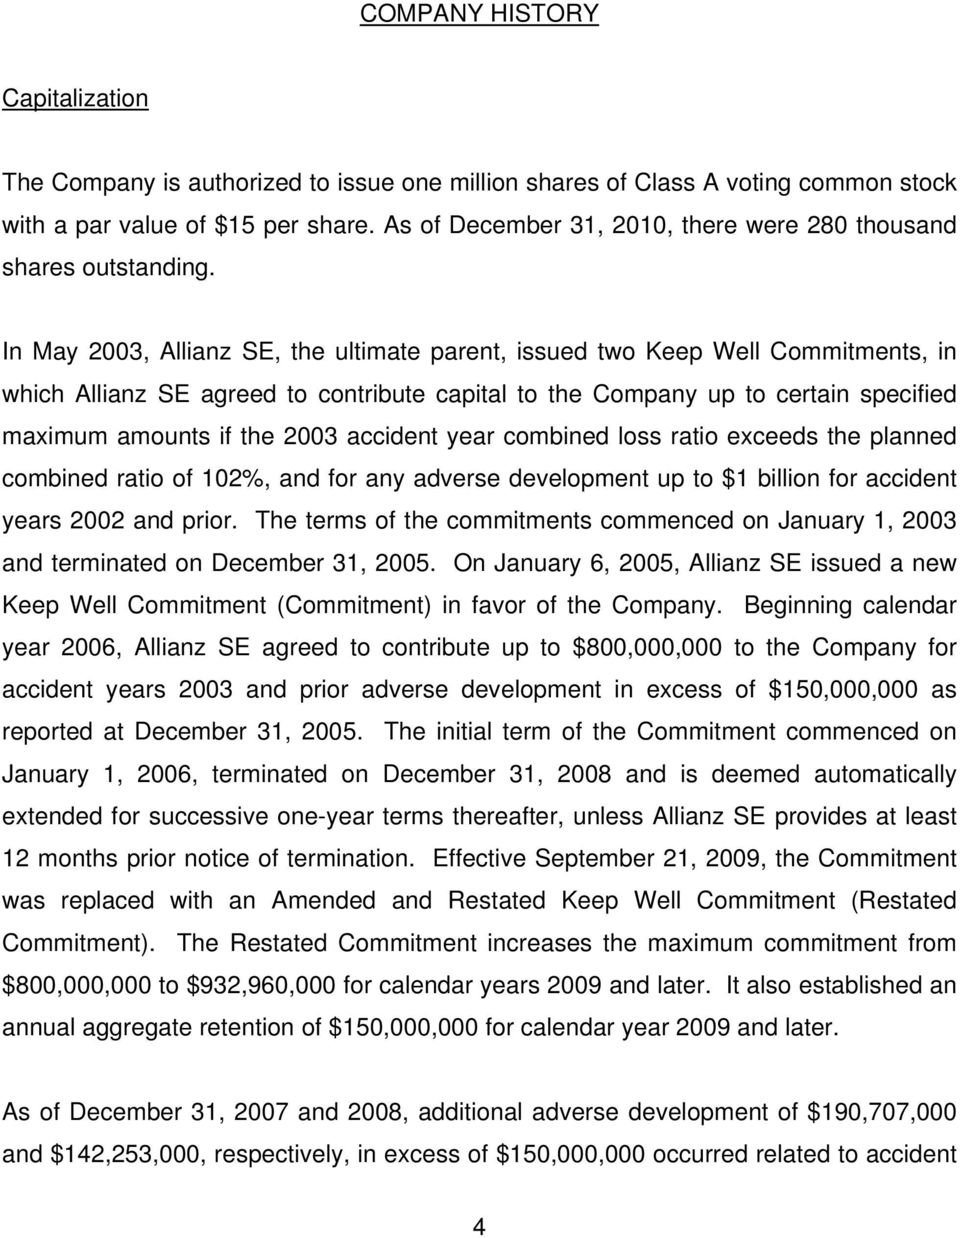 In May 2003, Allianz SE, the ultimate parent, issued two Keep Well Commitments, in which Allianz SE agreed to contribute capital to the Company up to certain specified maximum amounts if the 2003